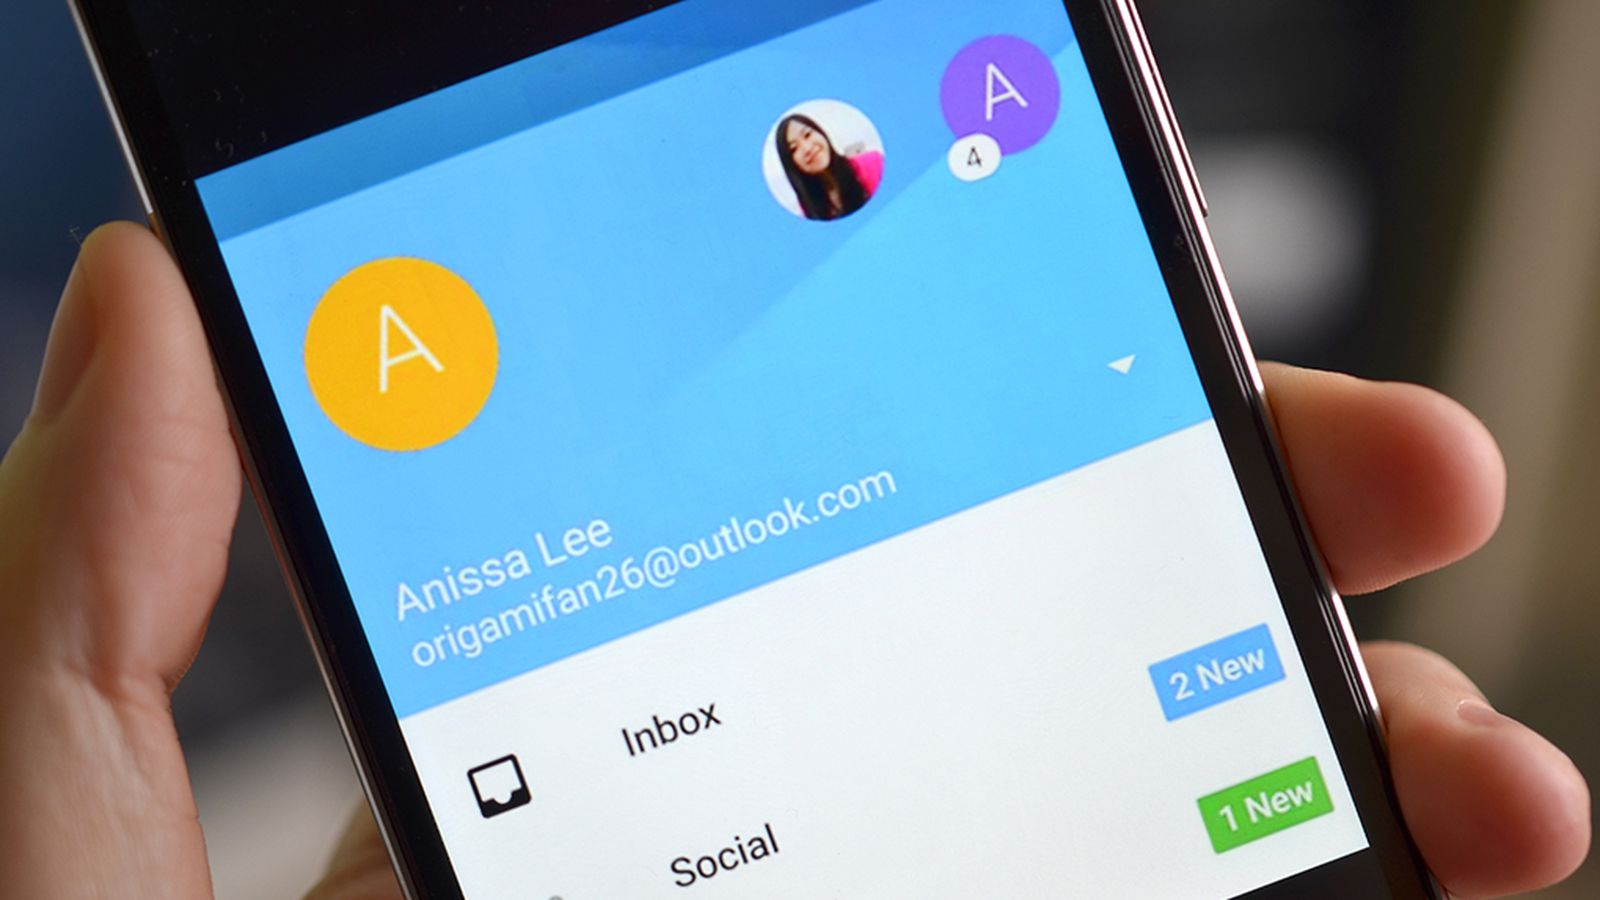 Gmail bmw theme - Google S Redesigned Gmail App Supports Yahoo And Outlook Accounts The Verge